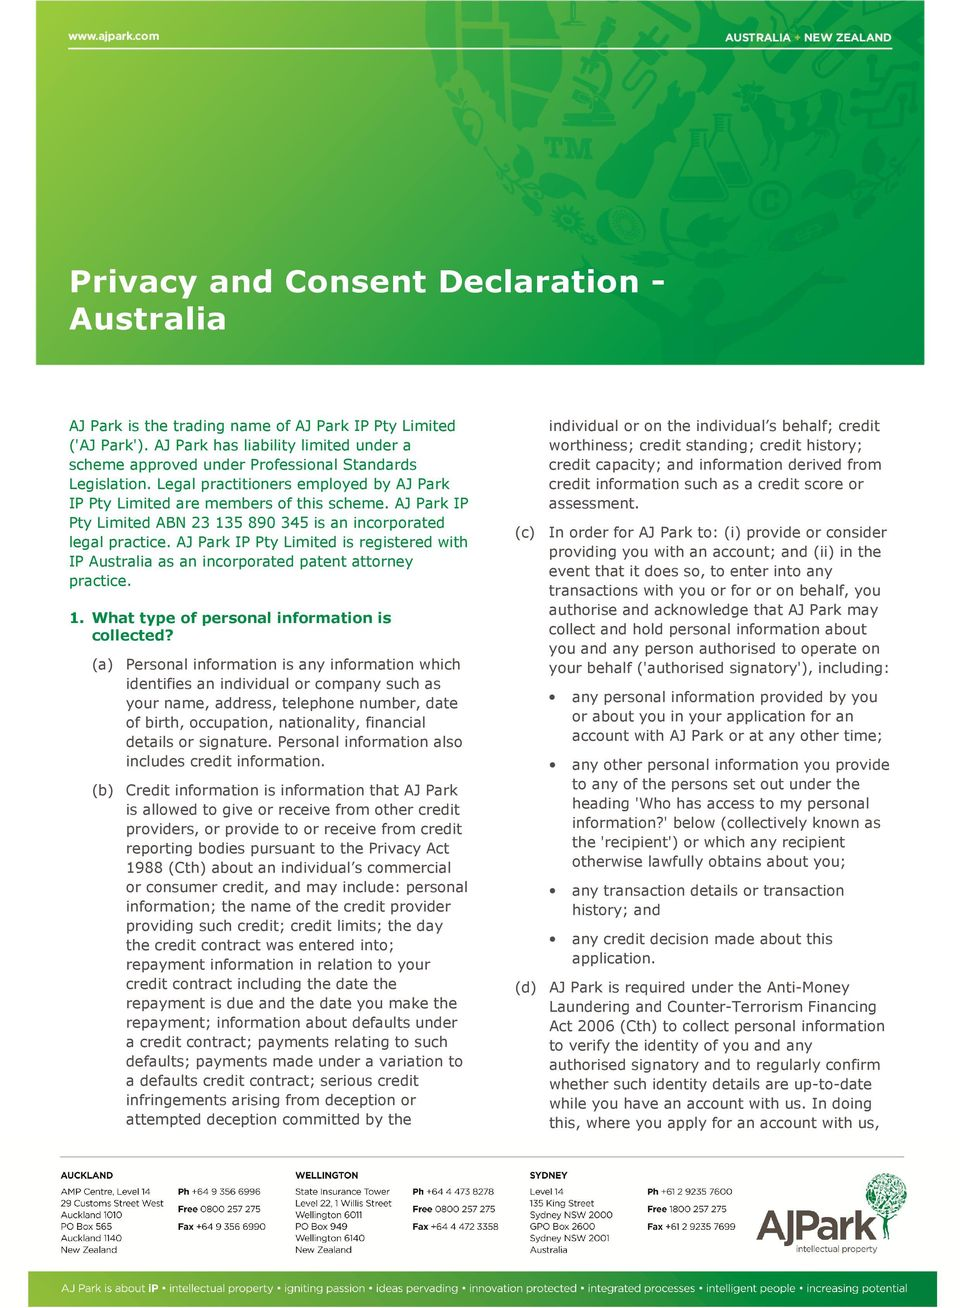 AJ Park IP Pty Limited ABN 23 135 890 345 is an incorporated legal practice. AJ Park IP Pty Limited is registered with IP Australia as an incorporated patent attorney practice. 1. What type of personal information is collected?